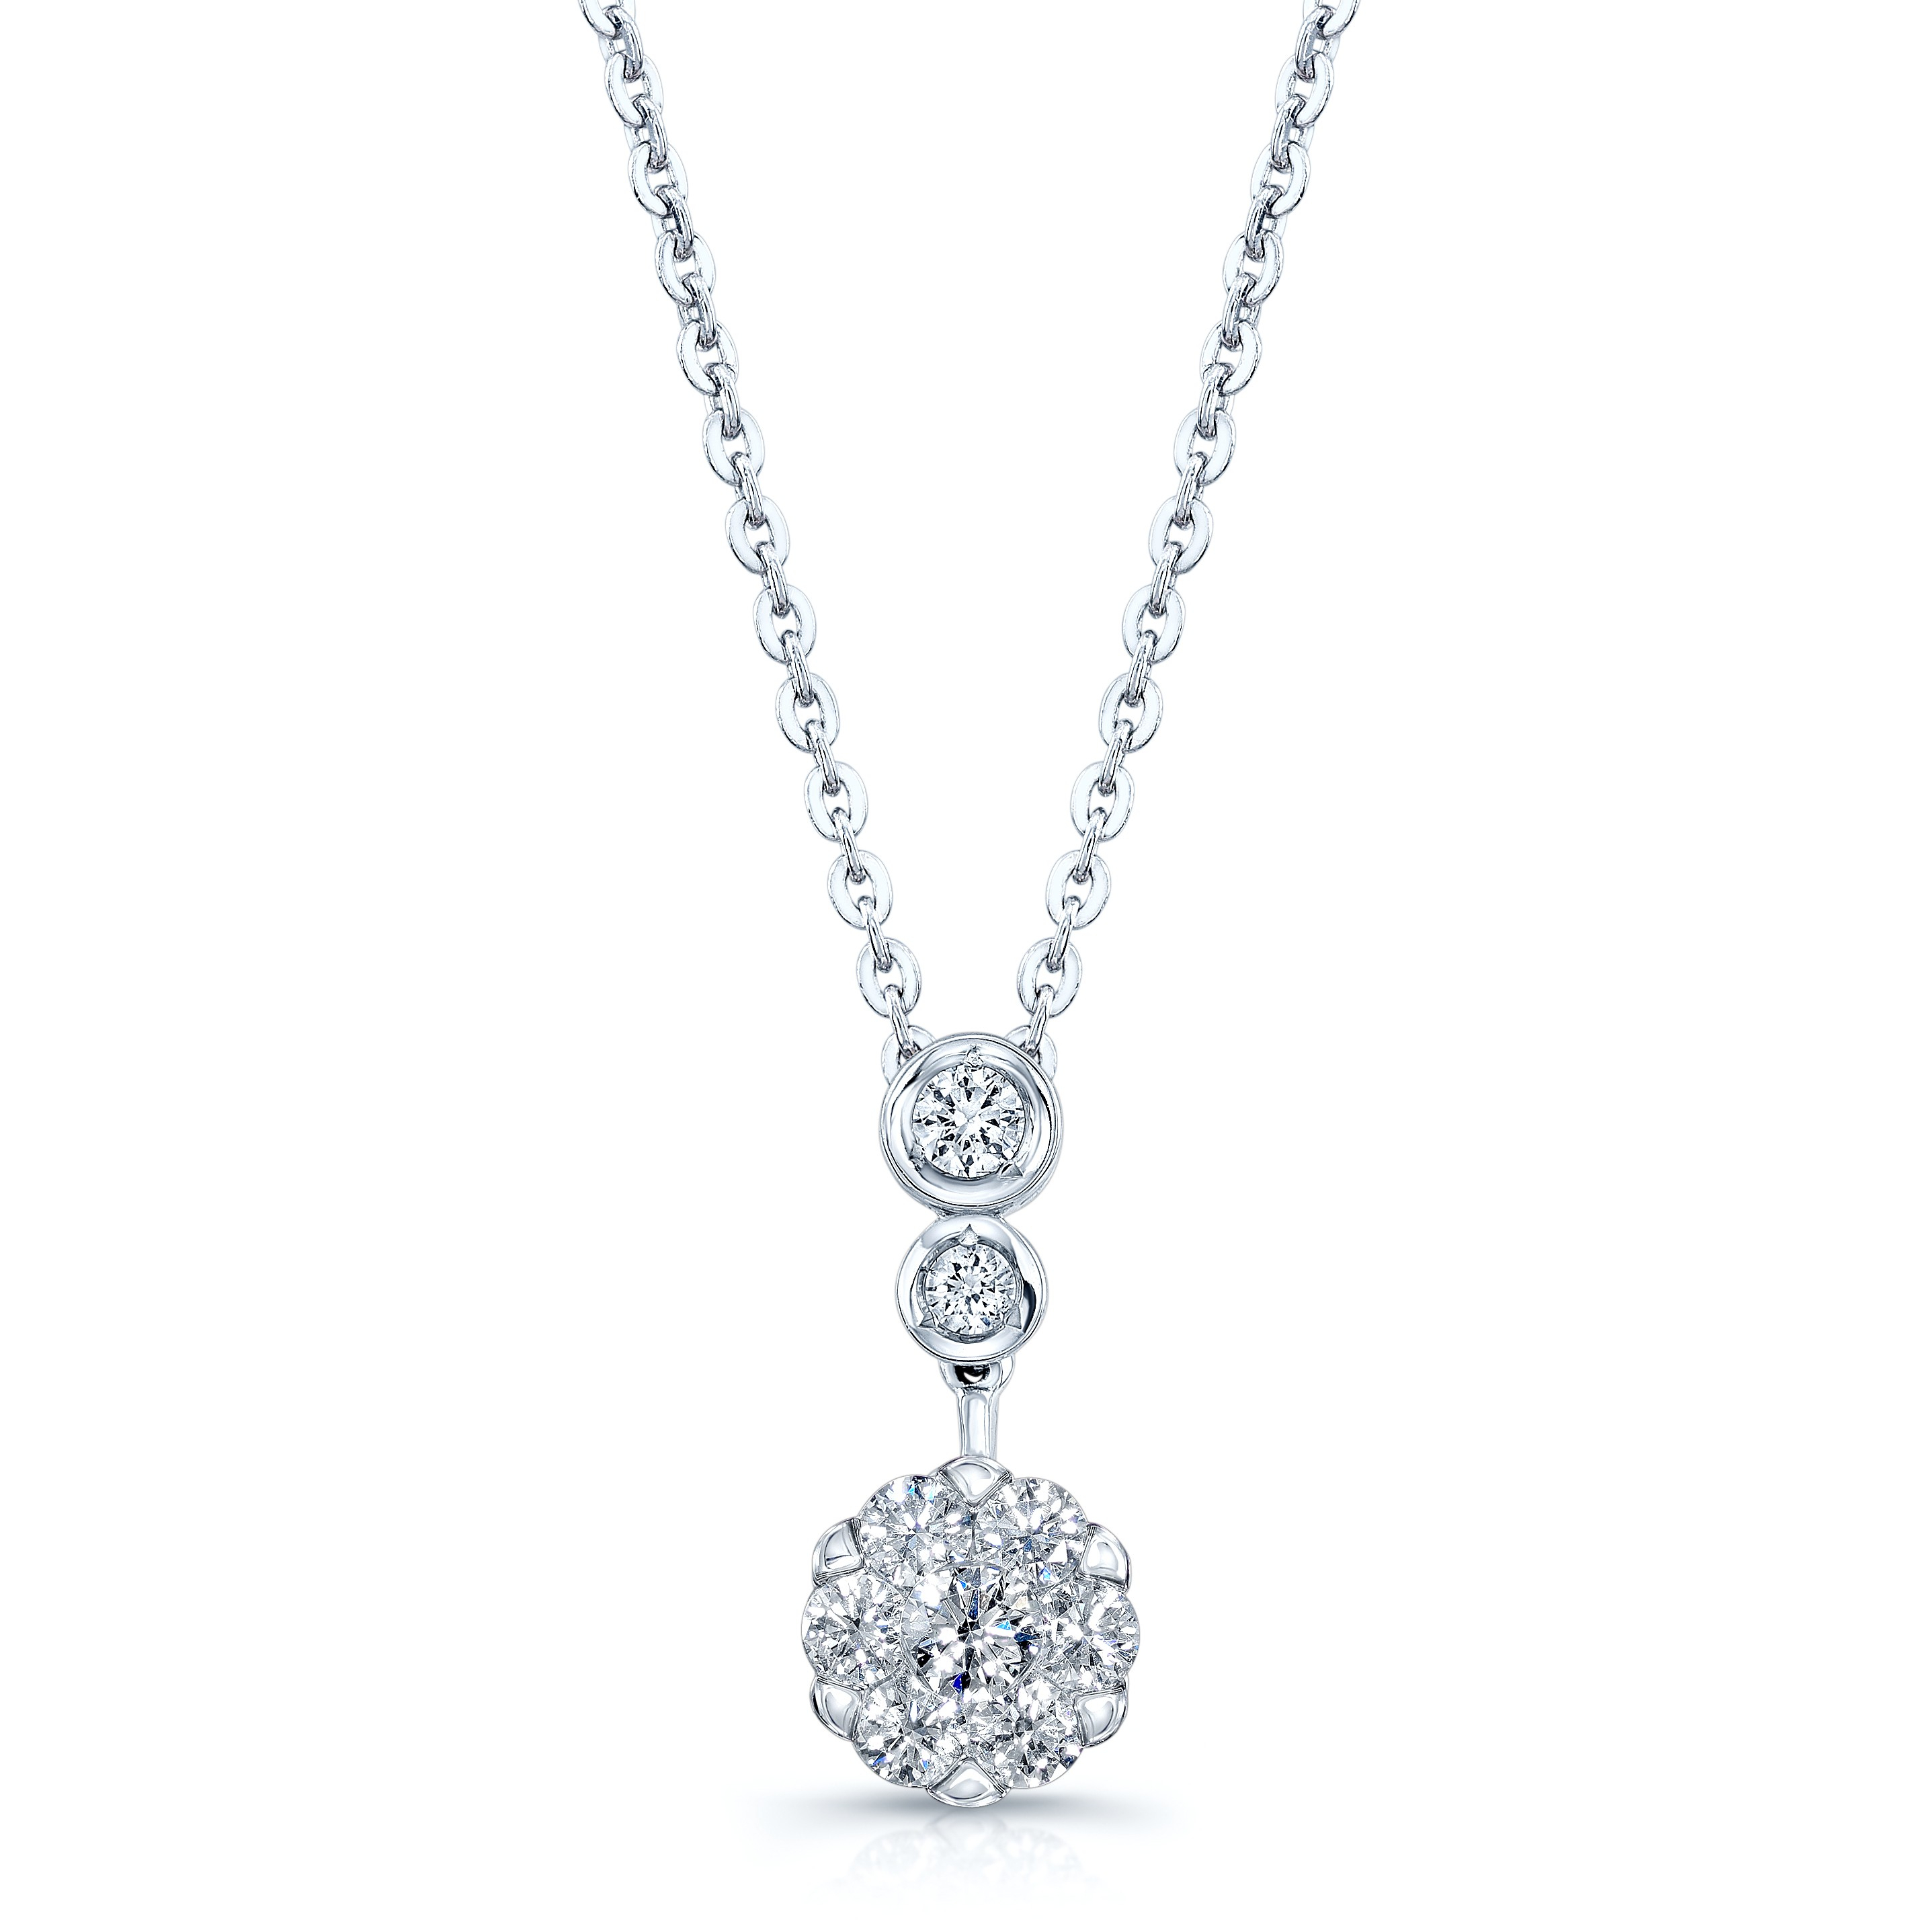 Neti .30 Carat Round Cut Halo Diamond Necklace 14K With Most Recently Released Round Sparkle Halo Necklaces (Gallery 23 of 25)